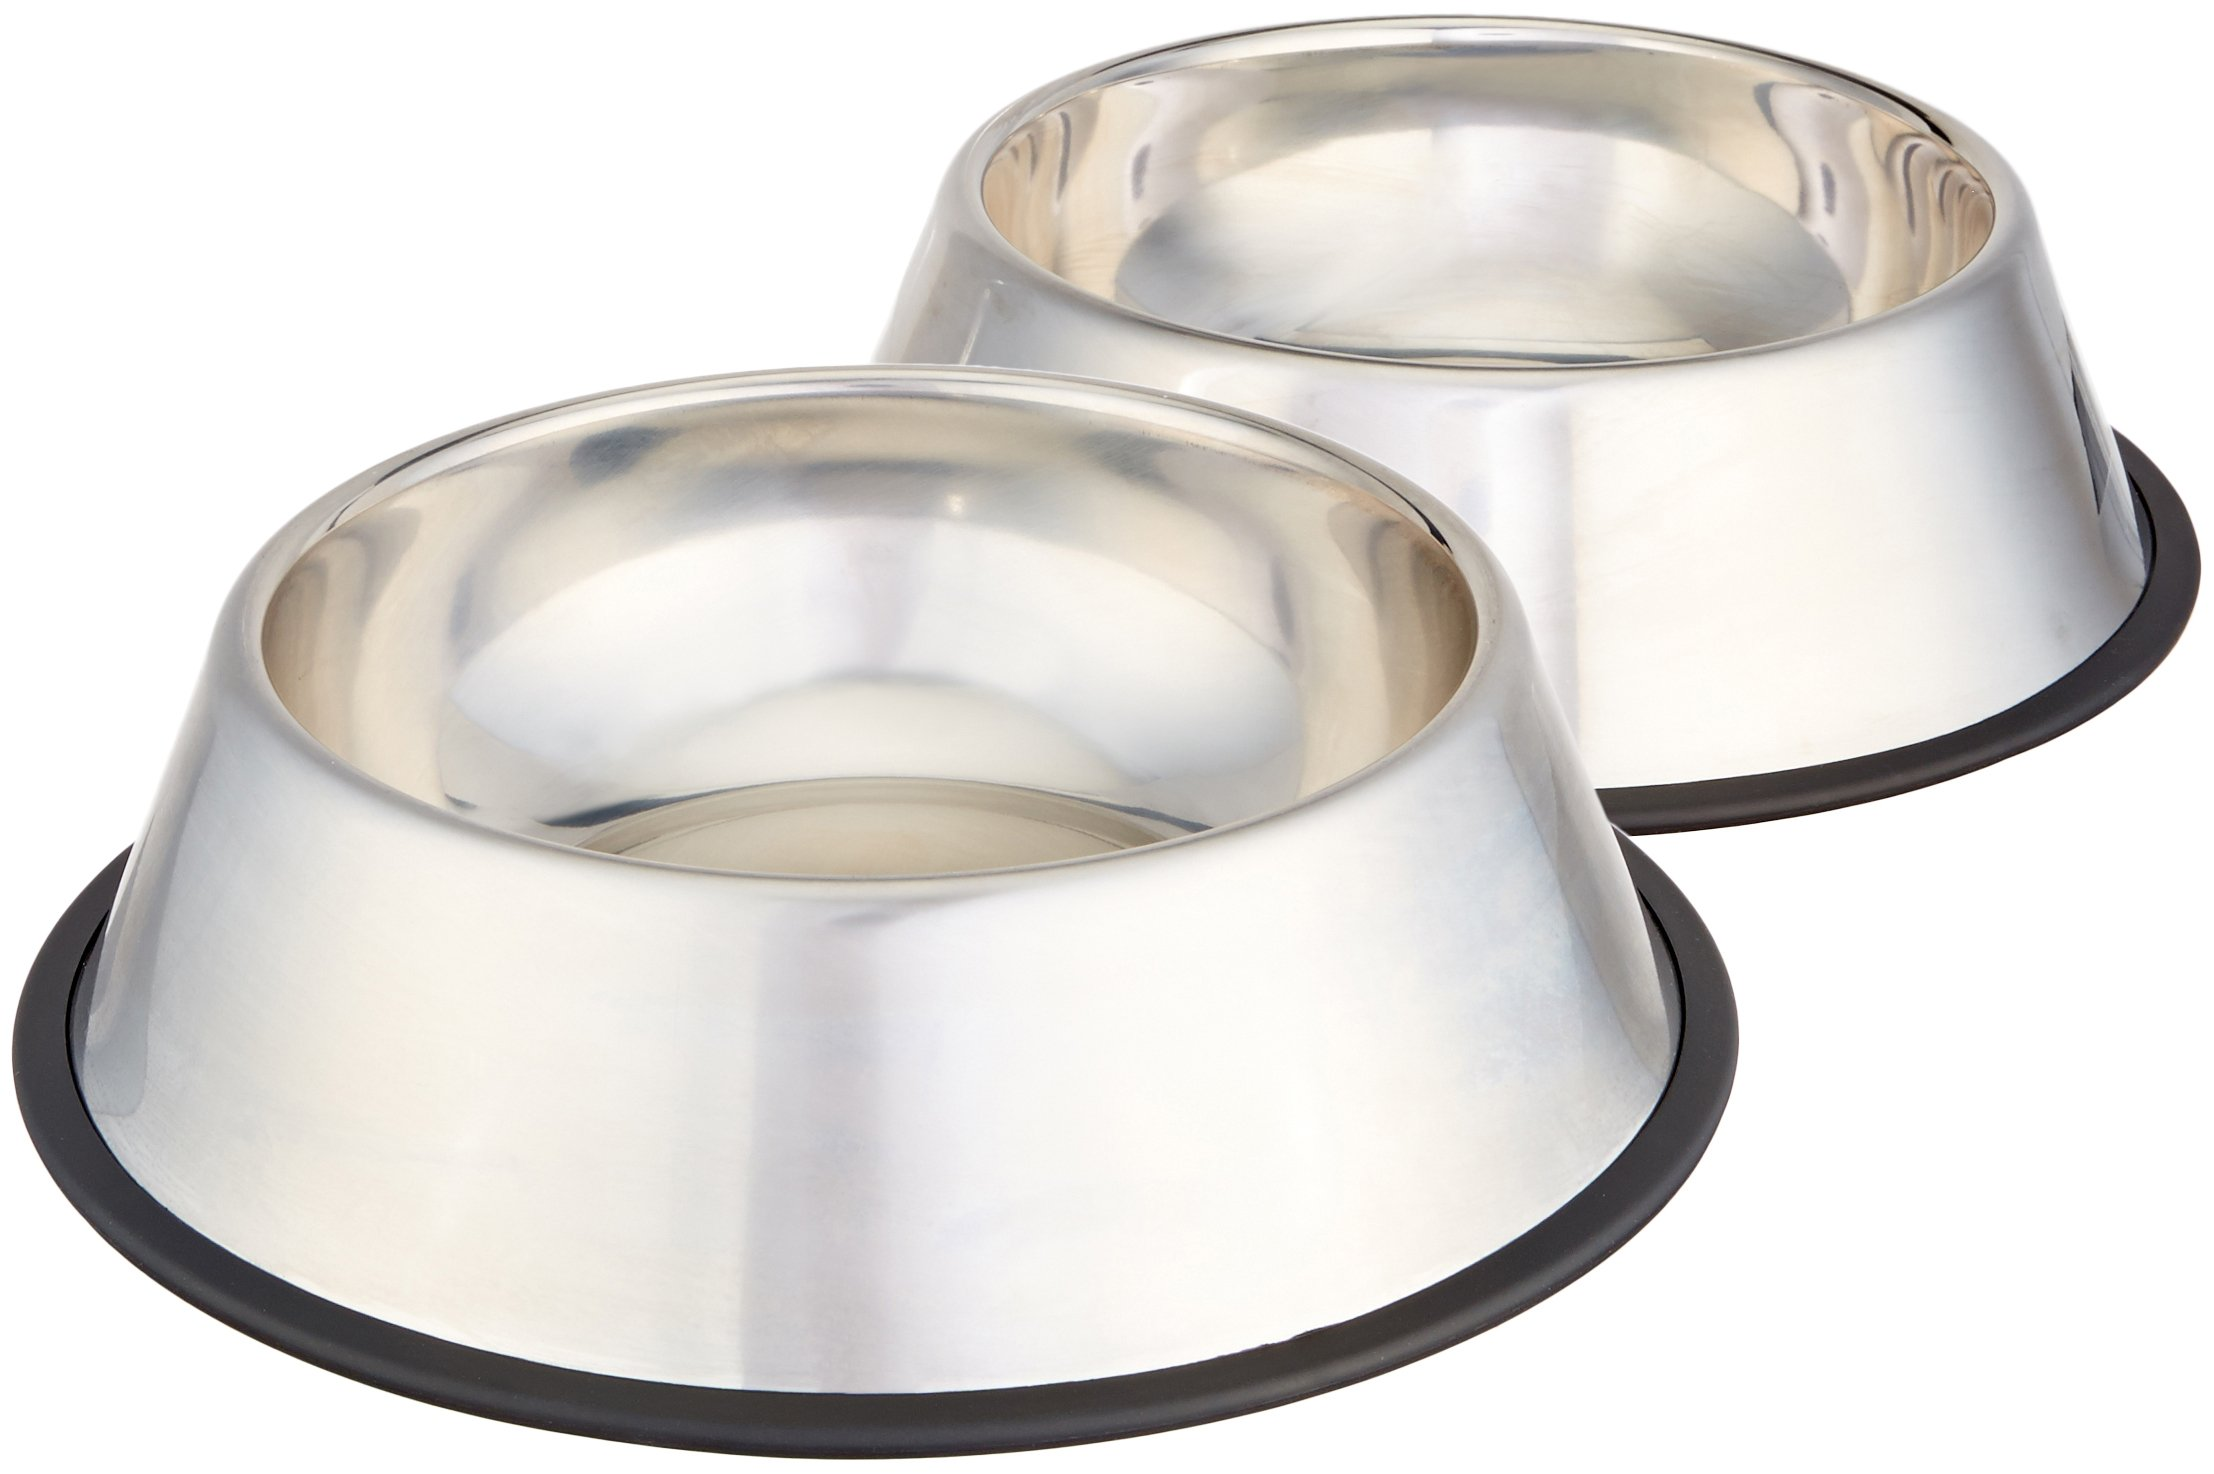 AmazonBasics Stainless Steel Pet Dog Water And Food Bowl - Set of 2, 11 x 3 Inches by AmazonBasics